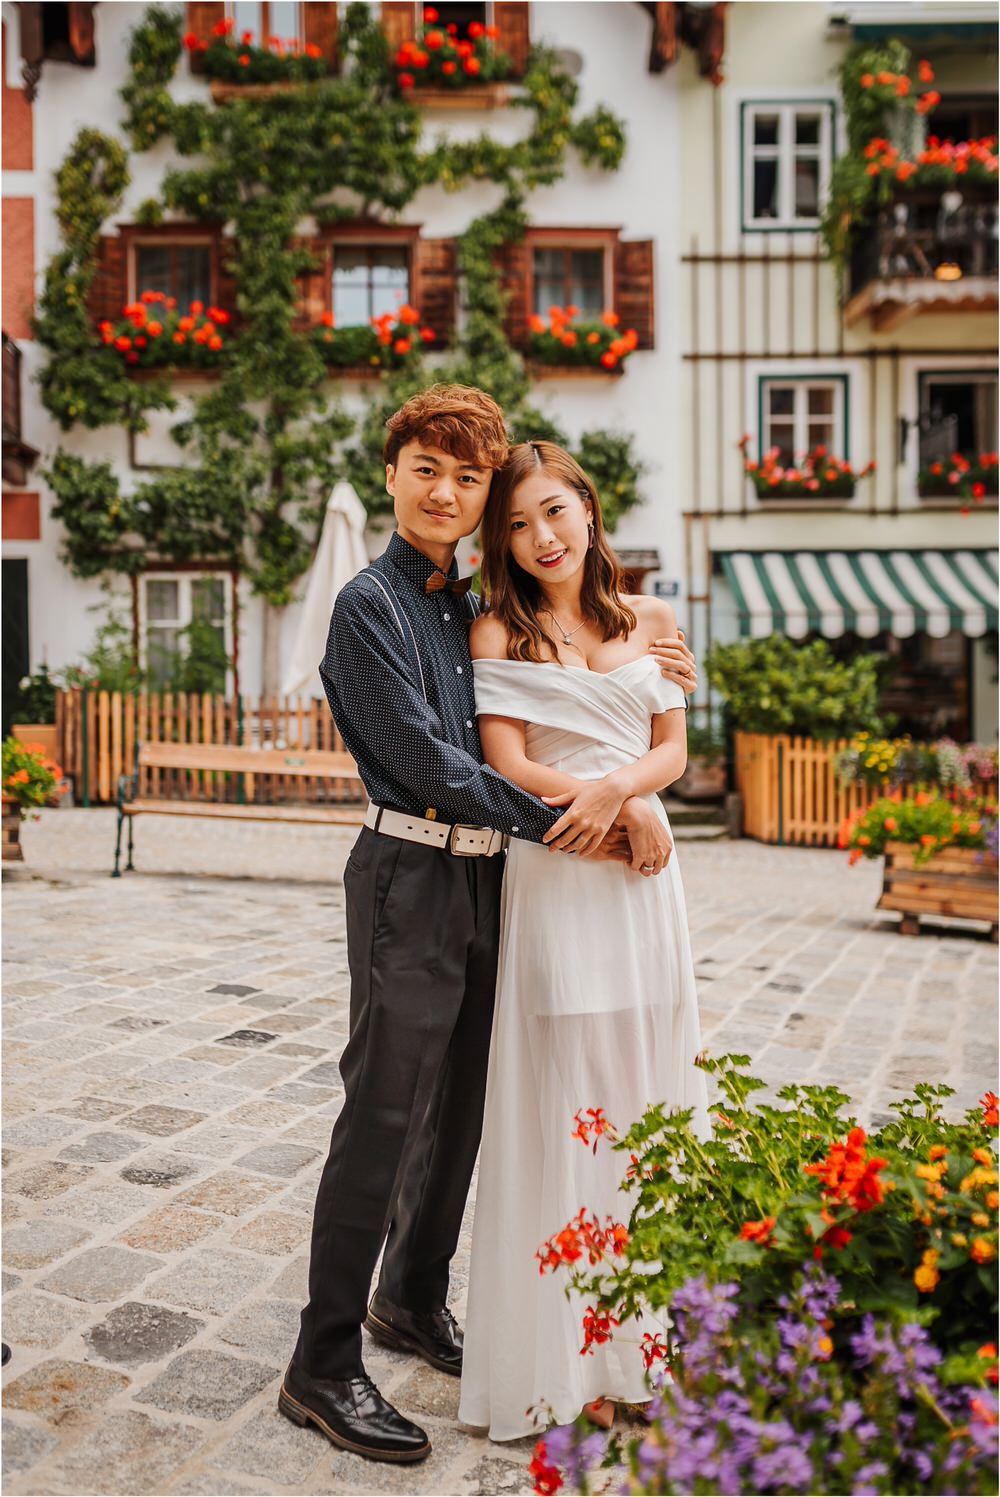 hallstatt austria wedding engagement photographer asian proposal surprise photography recommended nature professional 0014.jpg